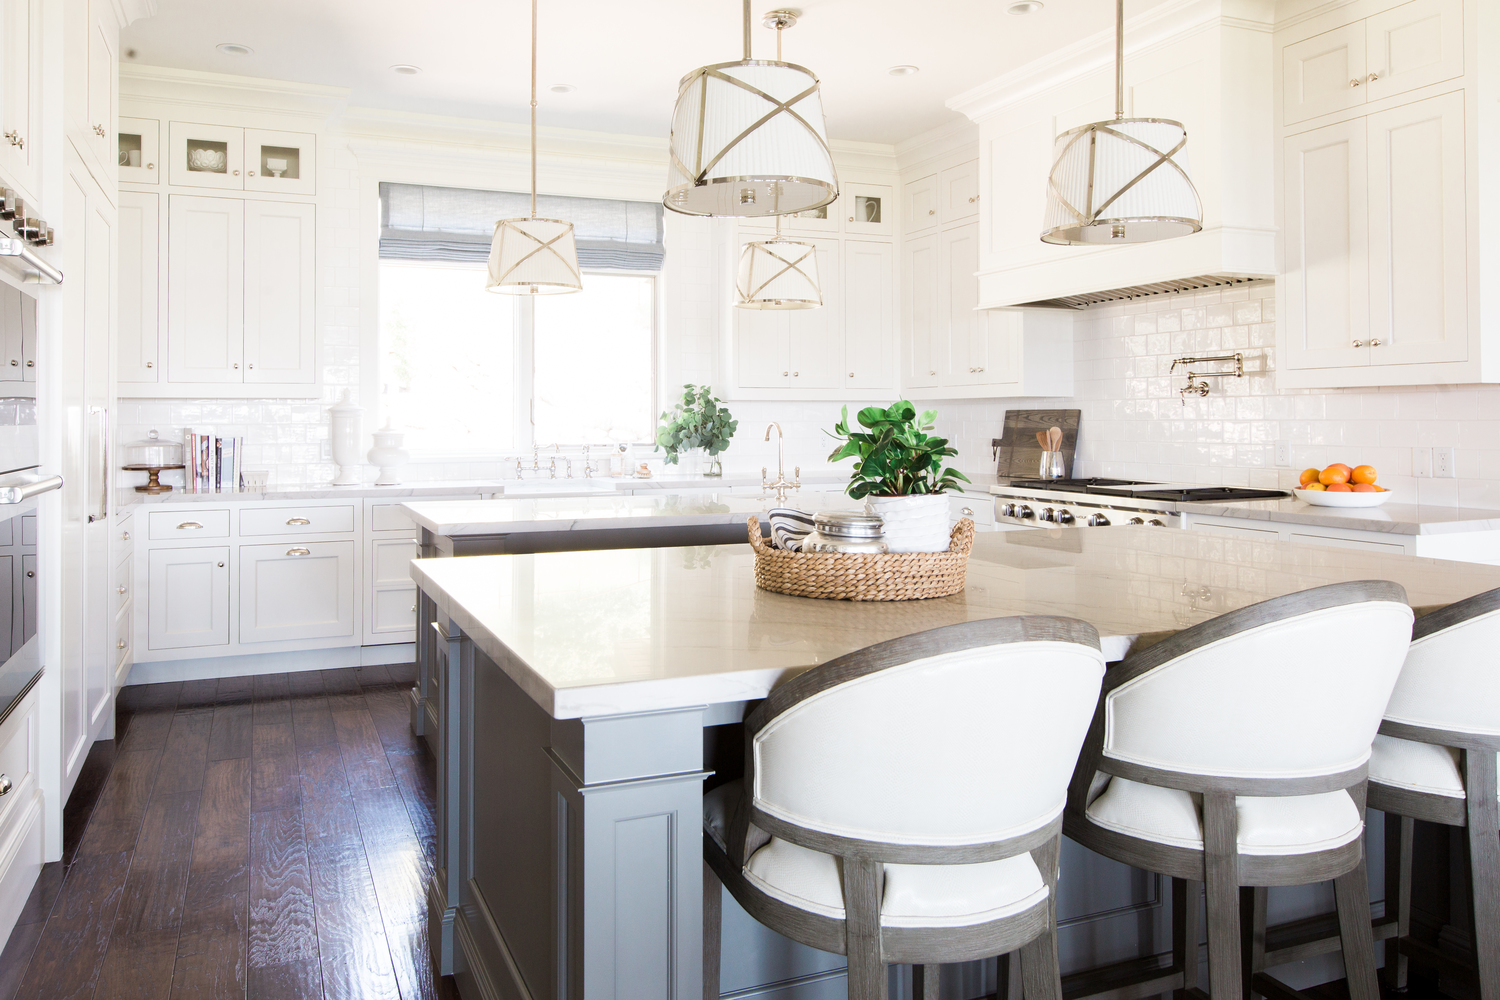 White+and+Gray+Kitchen+Remodel+with+Before_Afters+||+Studio+McGee.jpg